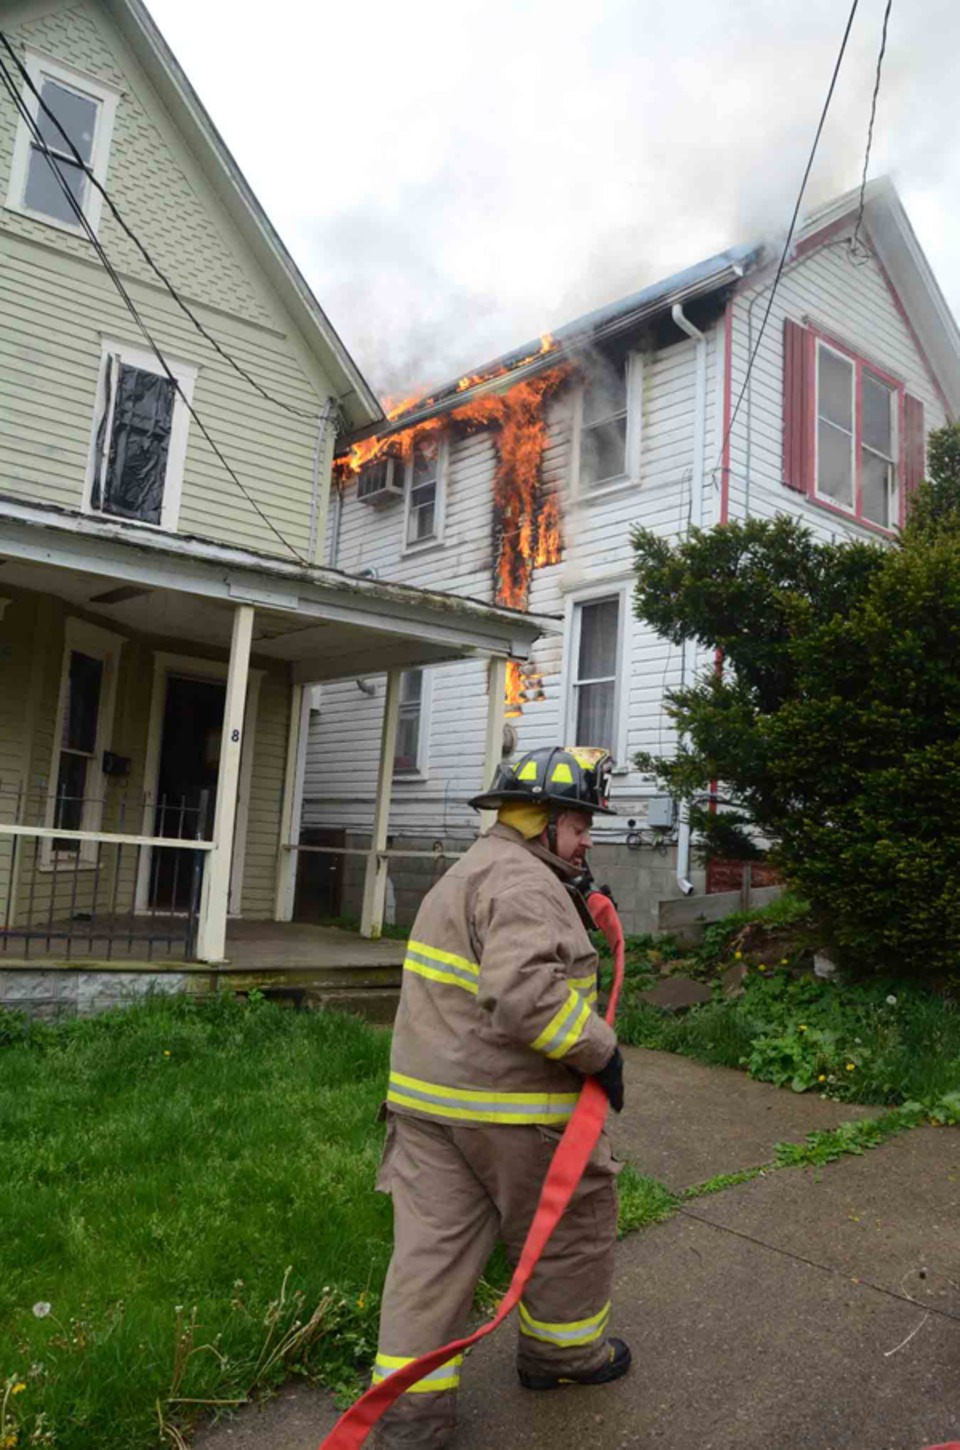 Bradford City Firefighters Contained May 7 House Fire On